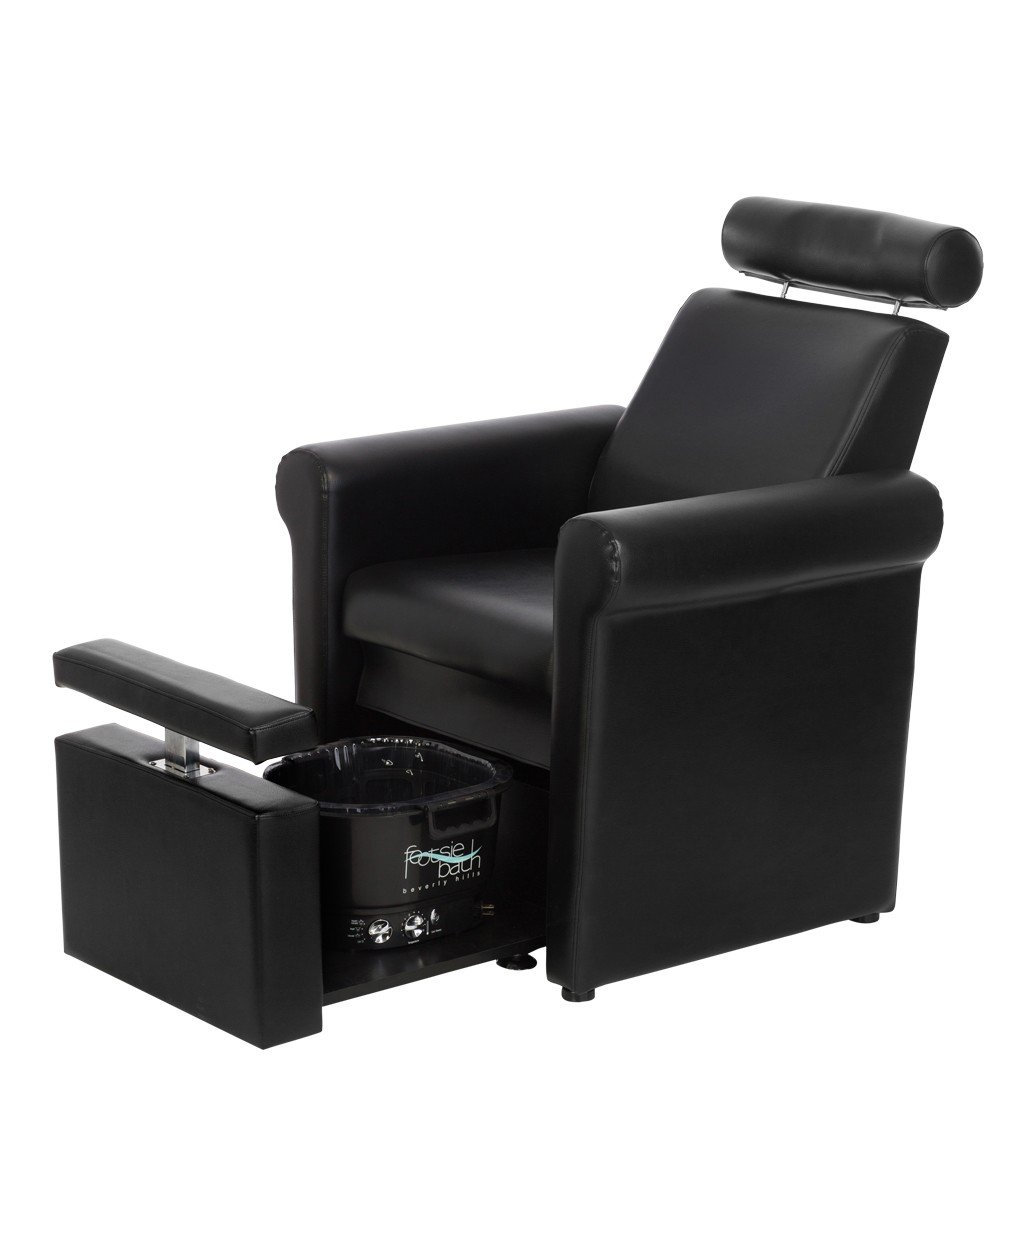 BR Beauty Mona Lisa Pedicure Chair, Black